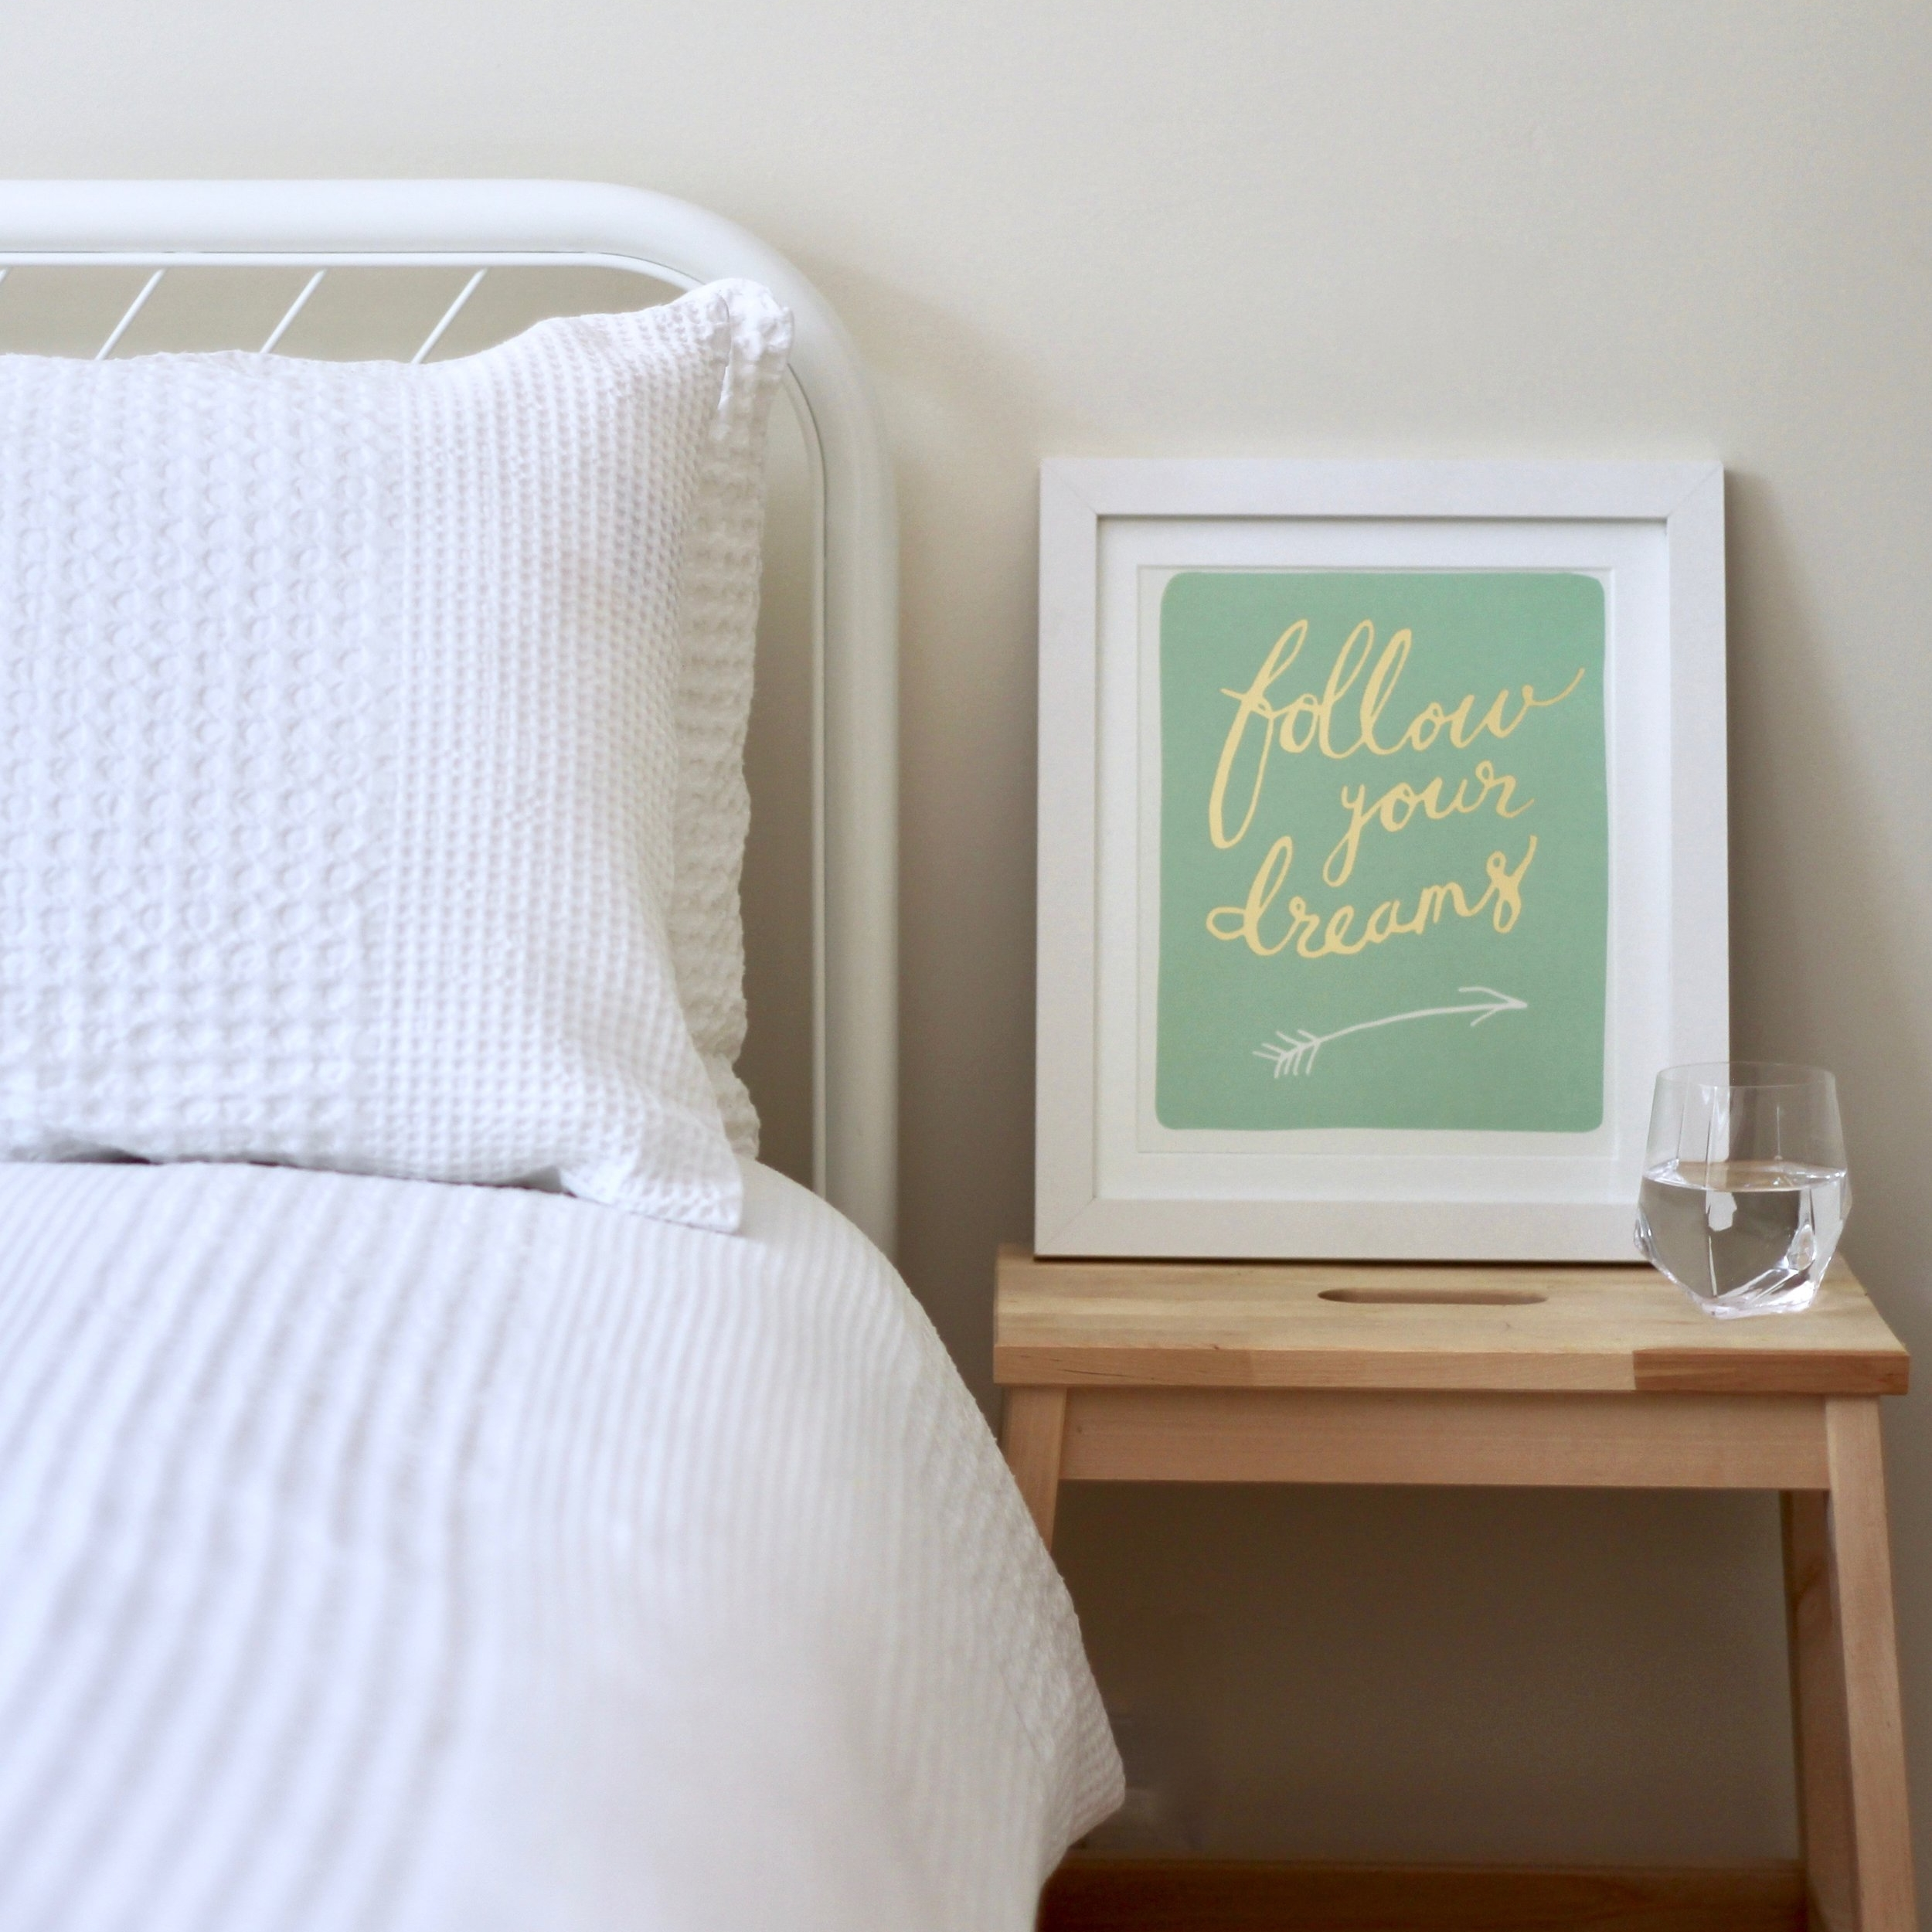 Follow your dreams quote in white frame   Joanne Becker   Be Stubborn   Coaching   small business, creative coaching, resources, content creator